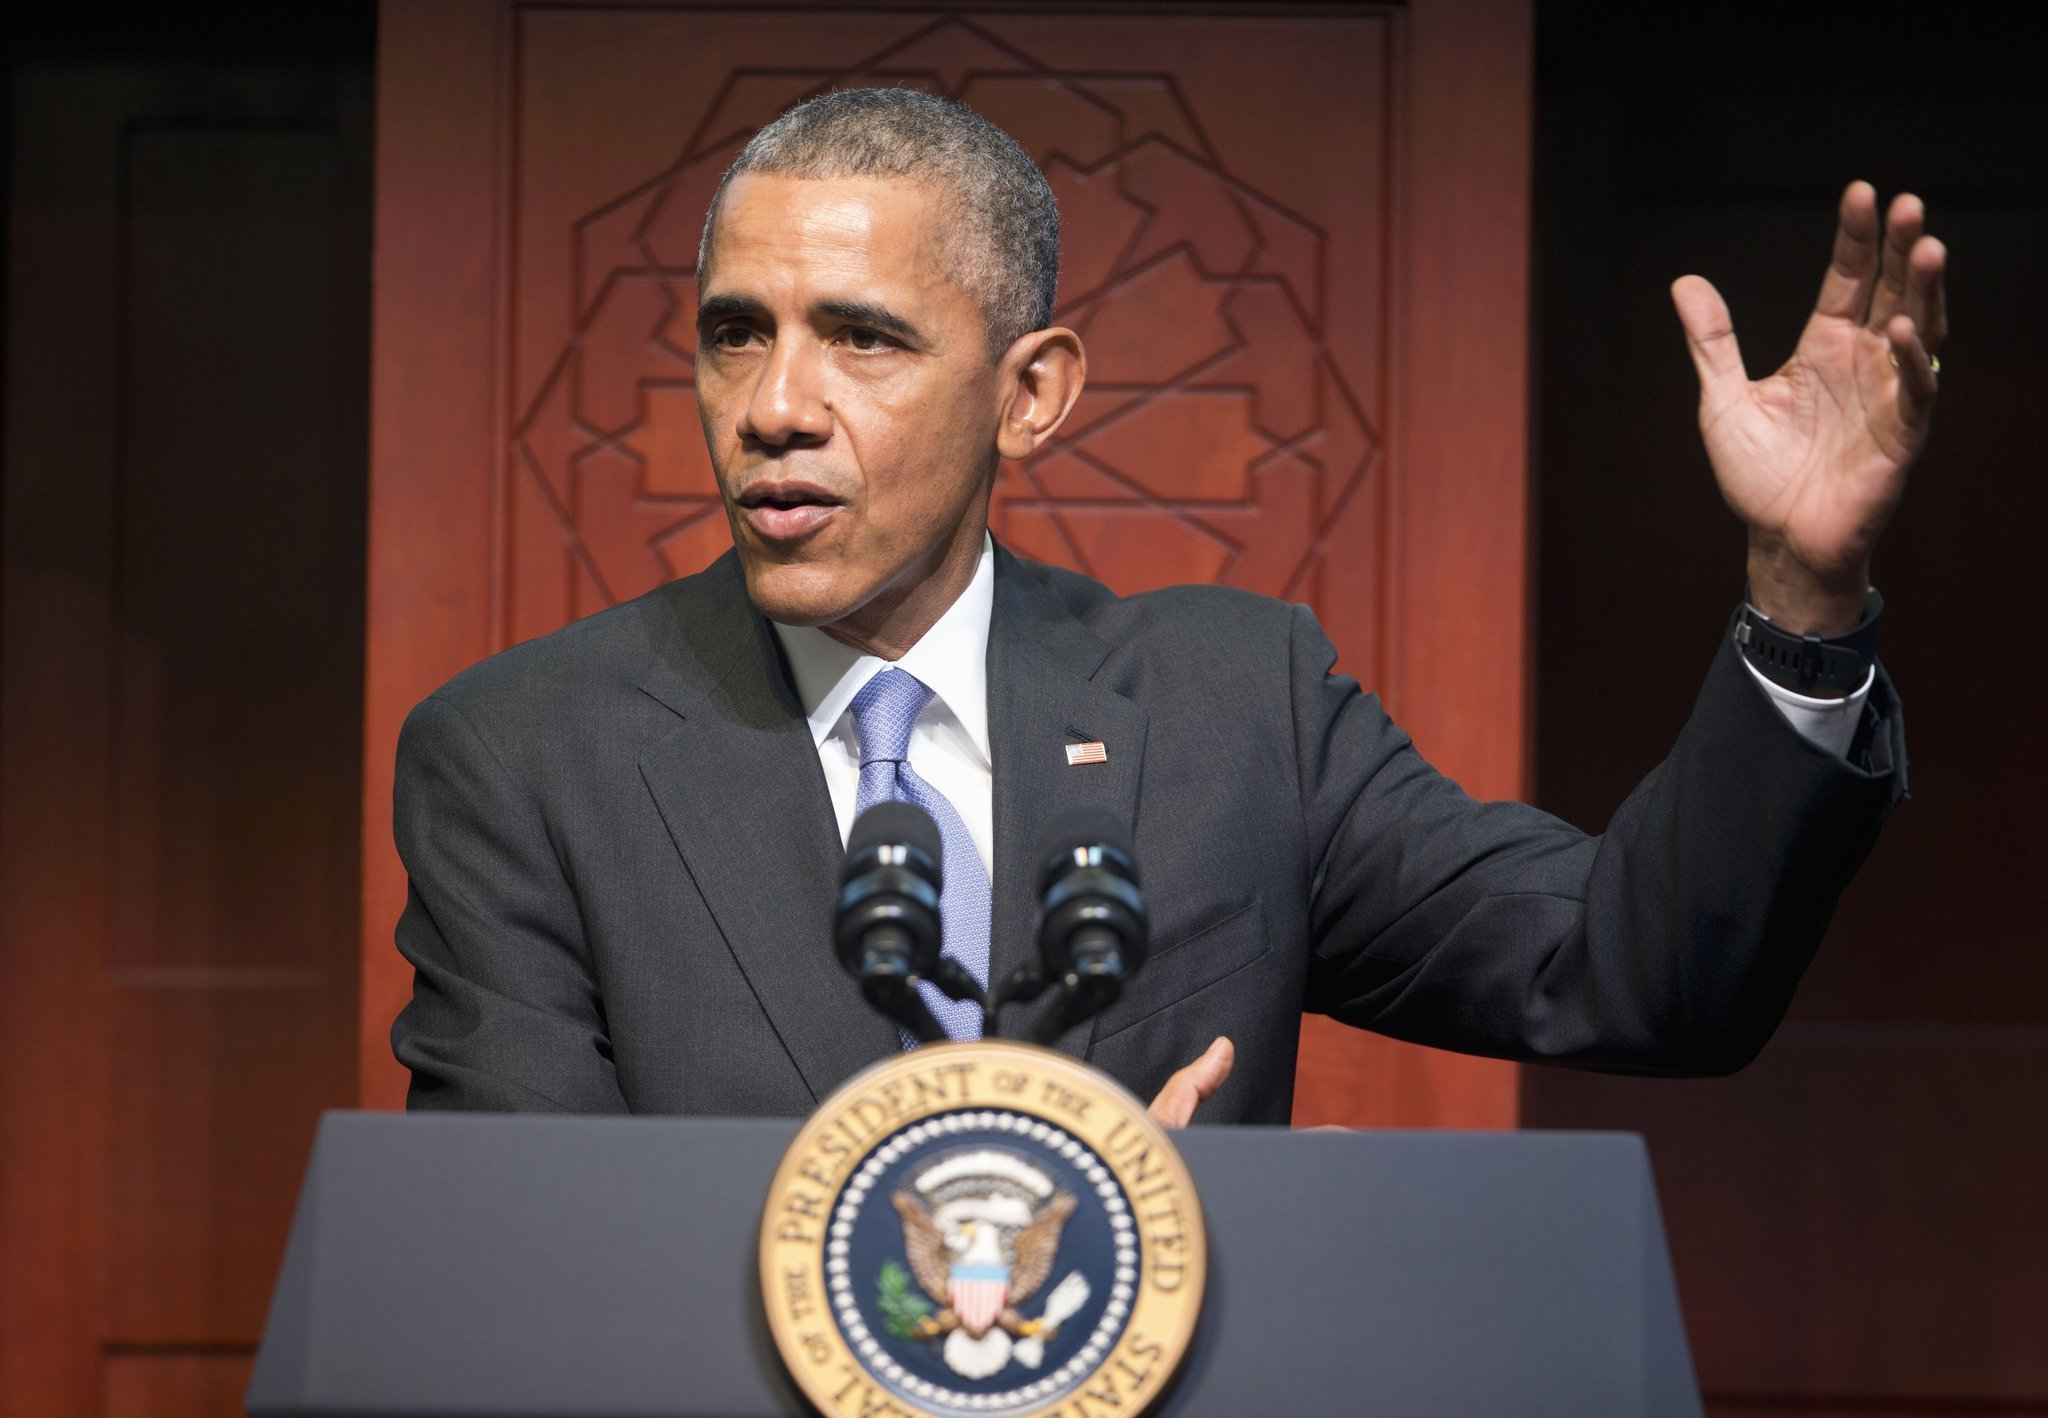 At Baltimore mosque, Obama encourages U.S. Muslims: 'You fit in here'